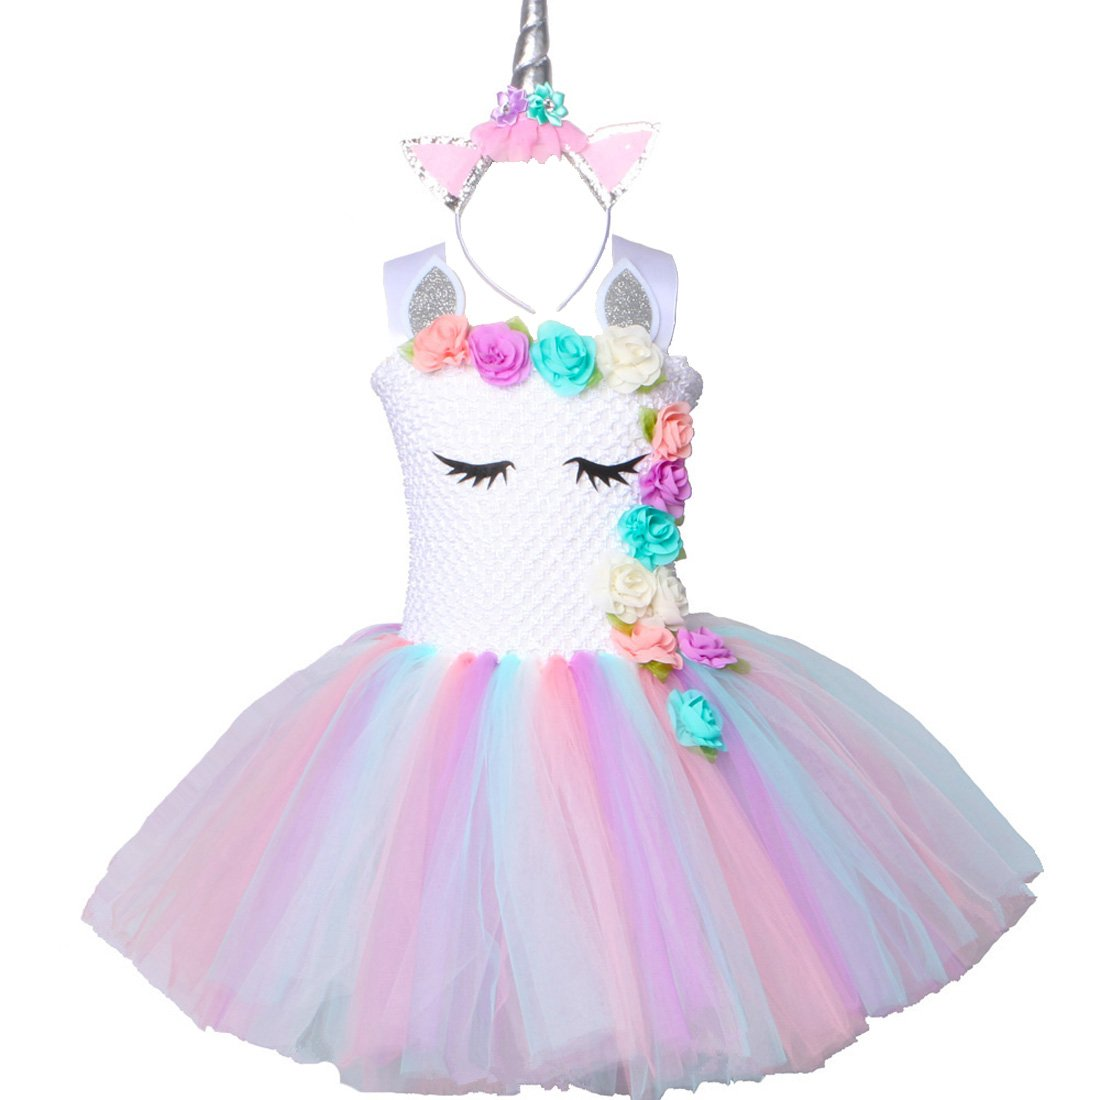 Pastel Unicorn Tutu Dress for Girls Kids Birthday Party Unicorn Costume Outfit with Headband, Color 1, Middle(3-4years)